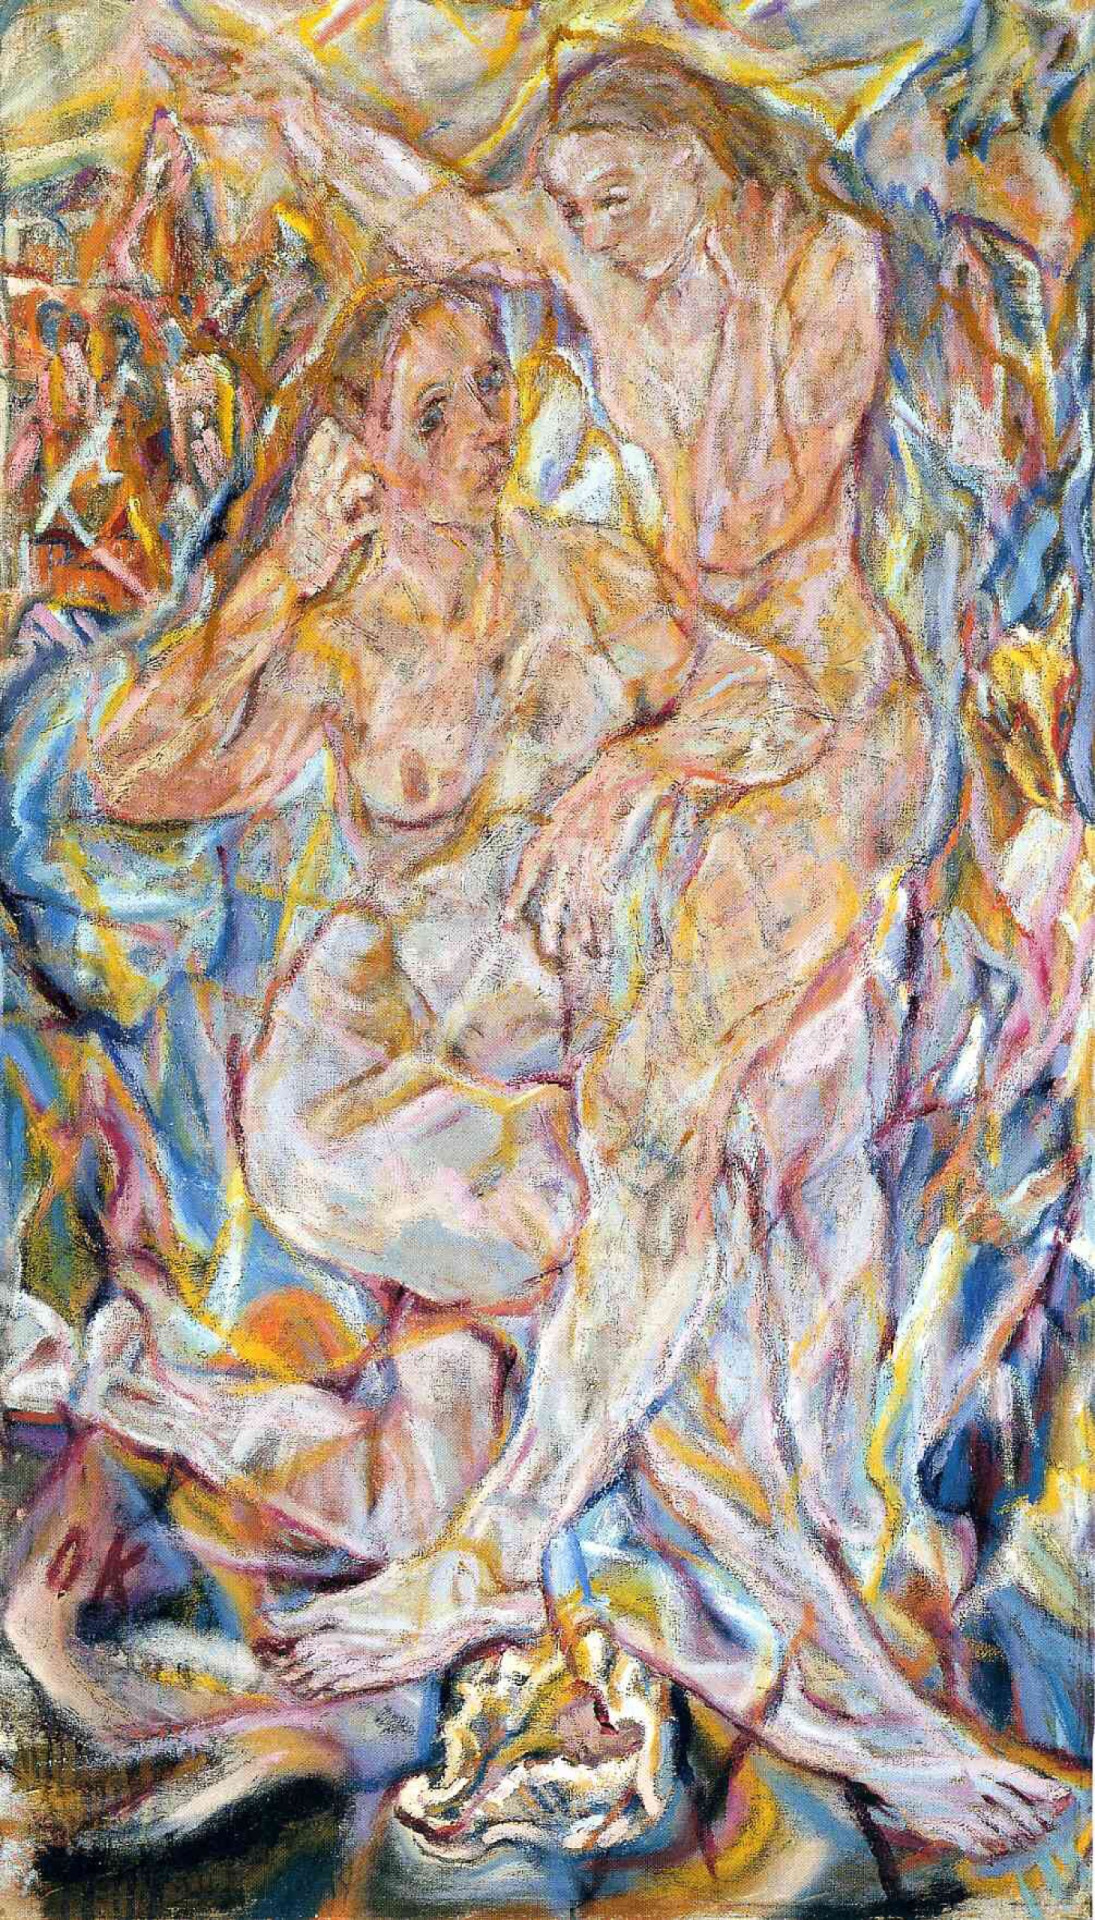 Double Nude: Two Women, Oskar Kokoschka, 1912